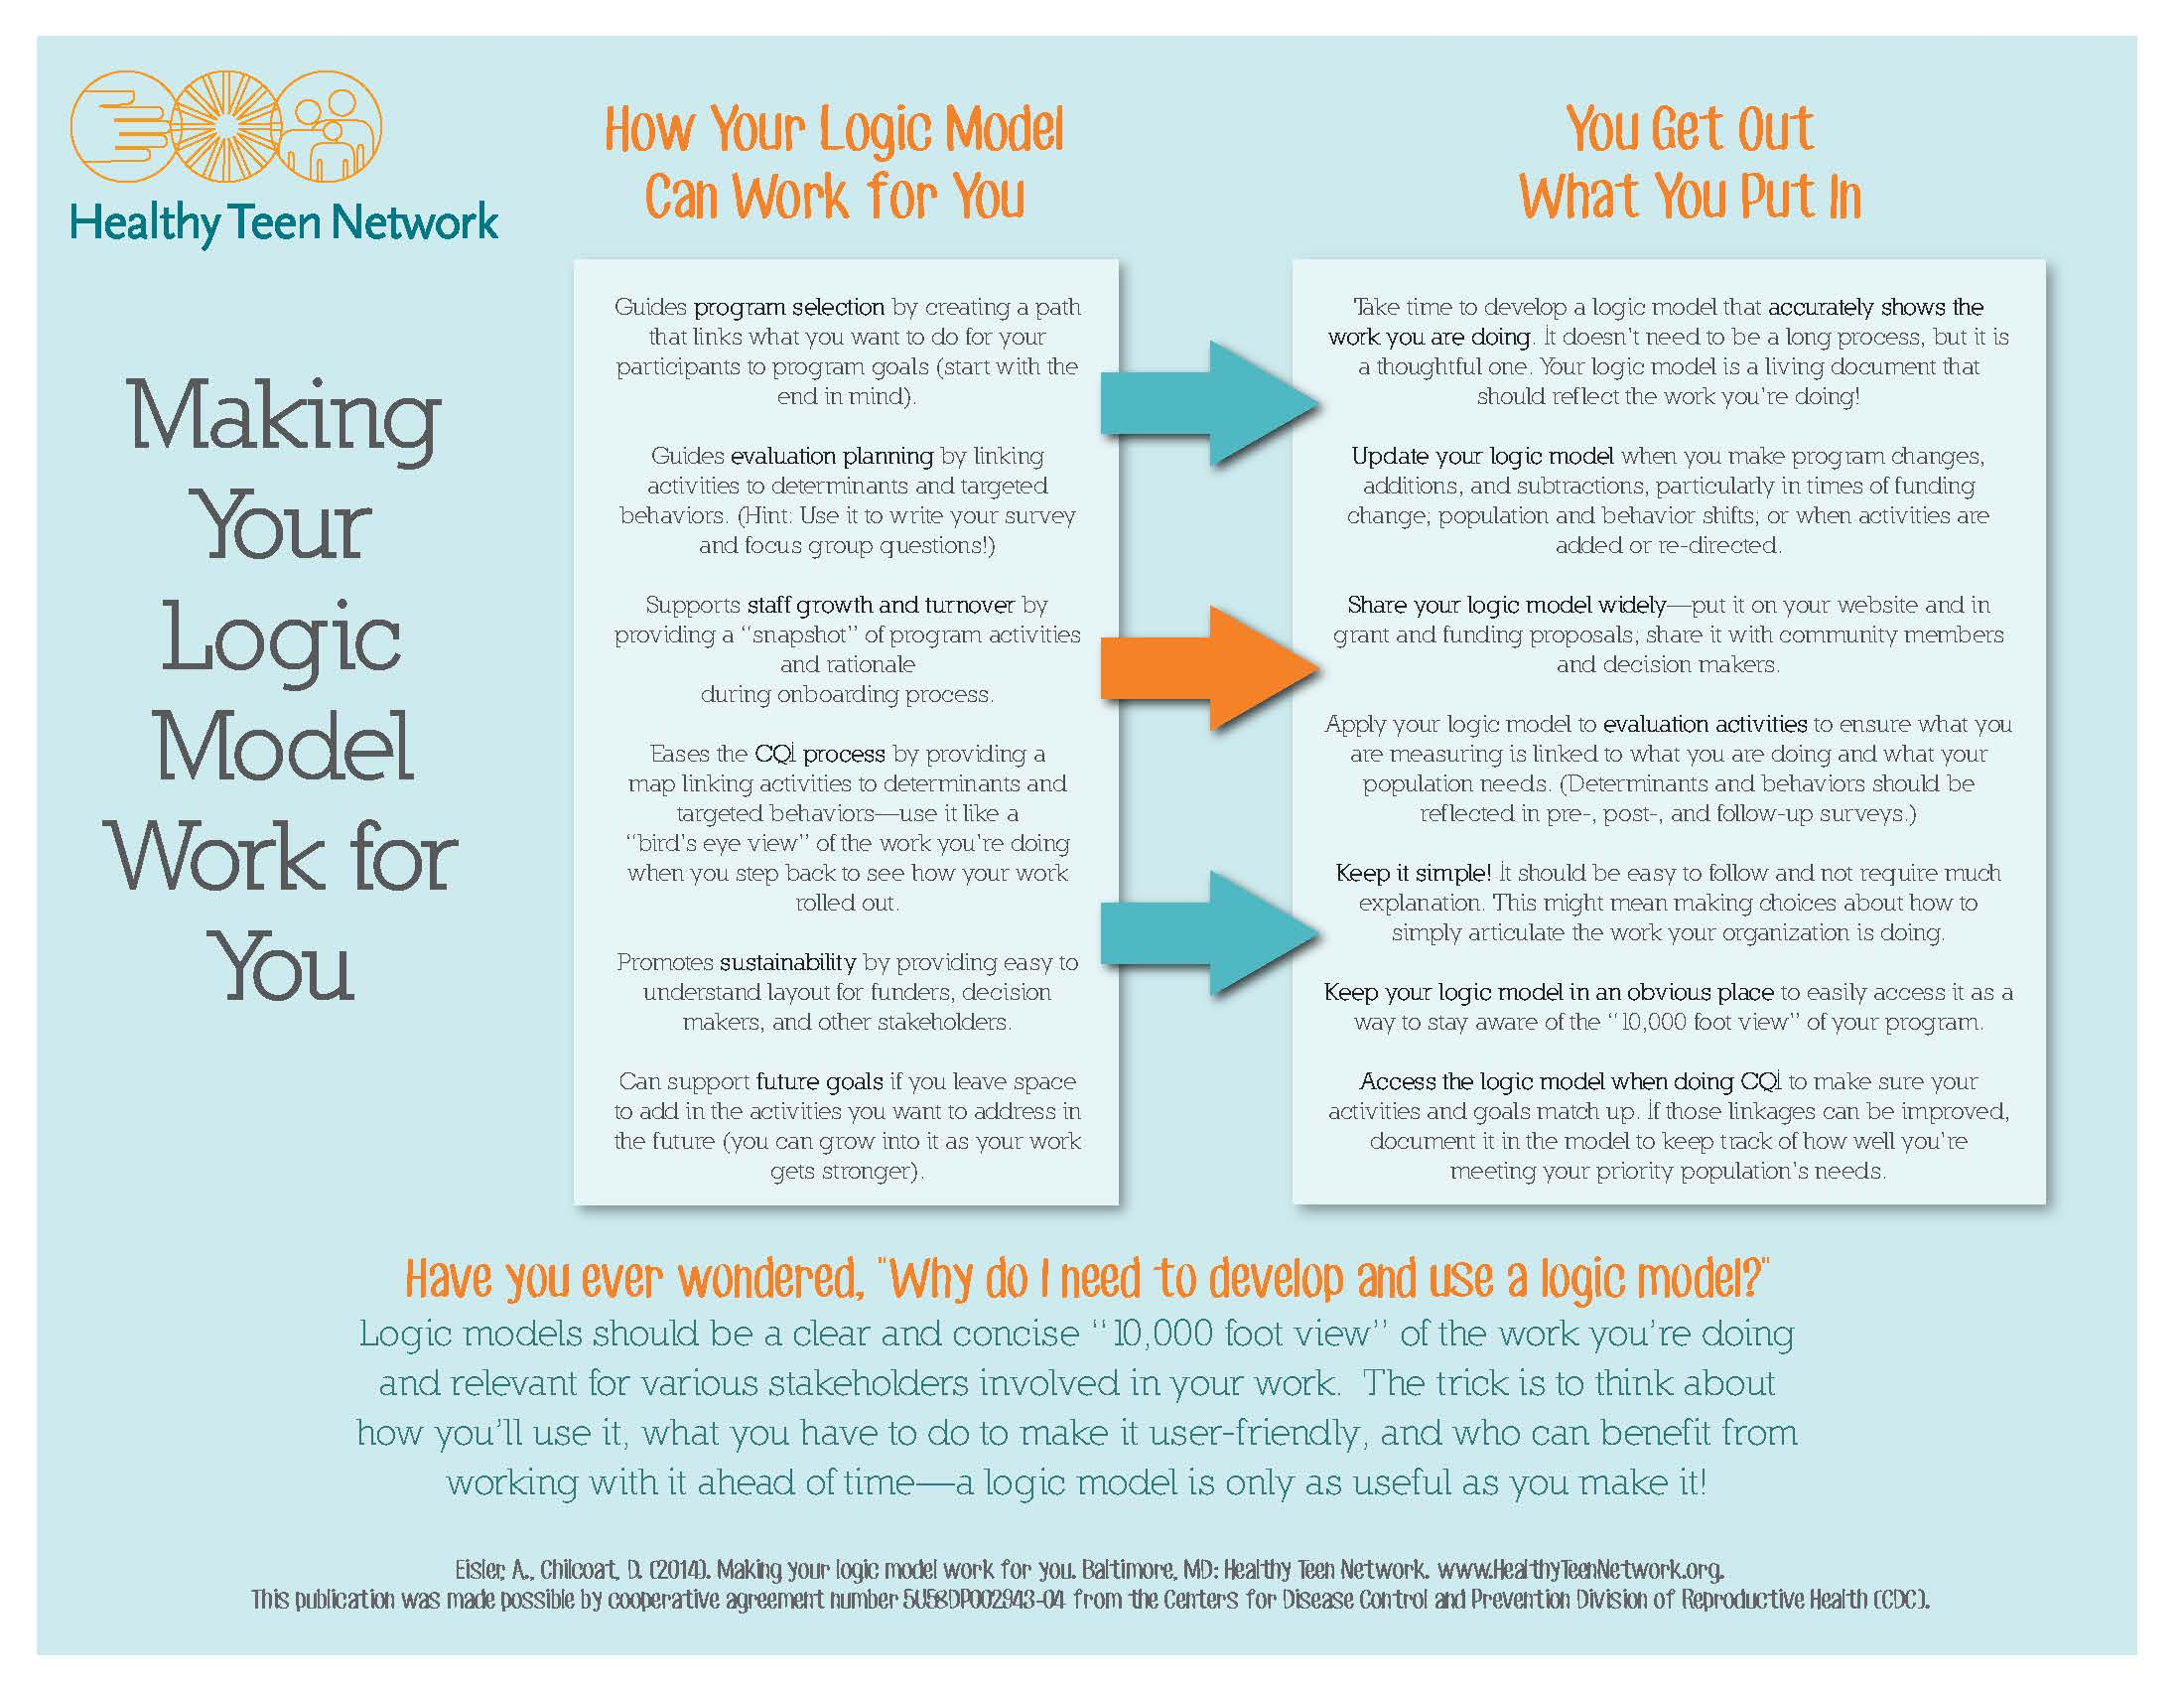 Cover image of making your logic model work for you tip sheet